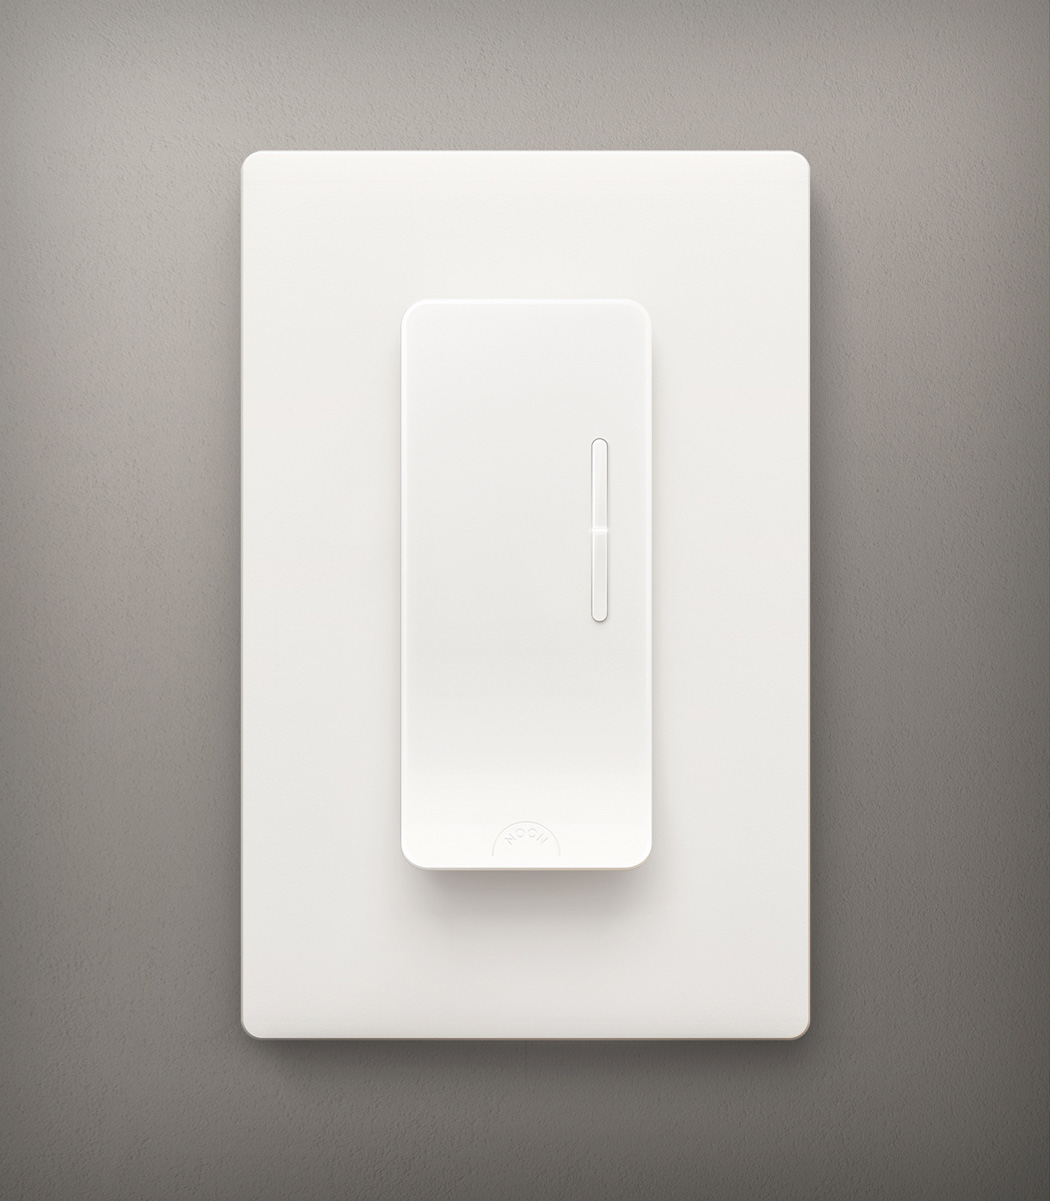 noon_home_switch_08